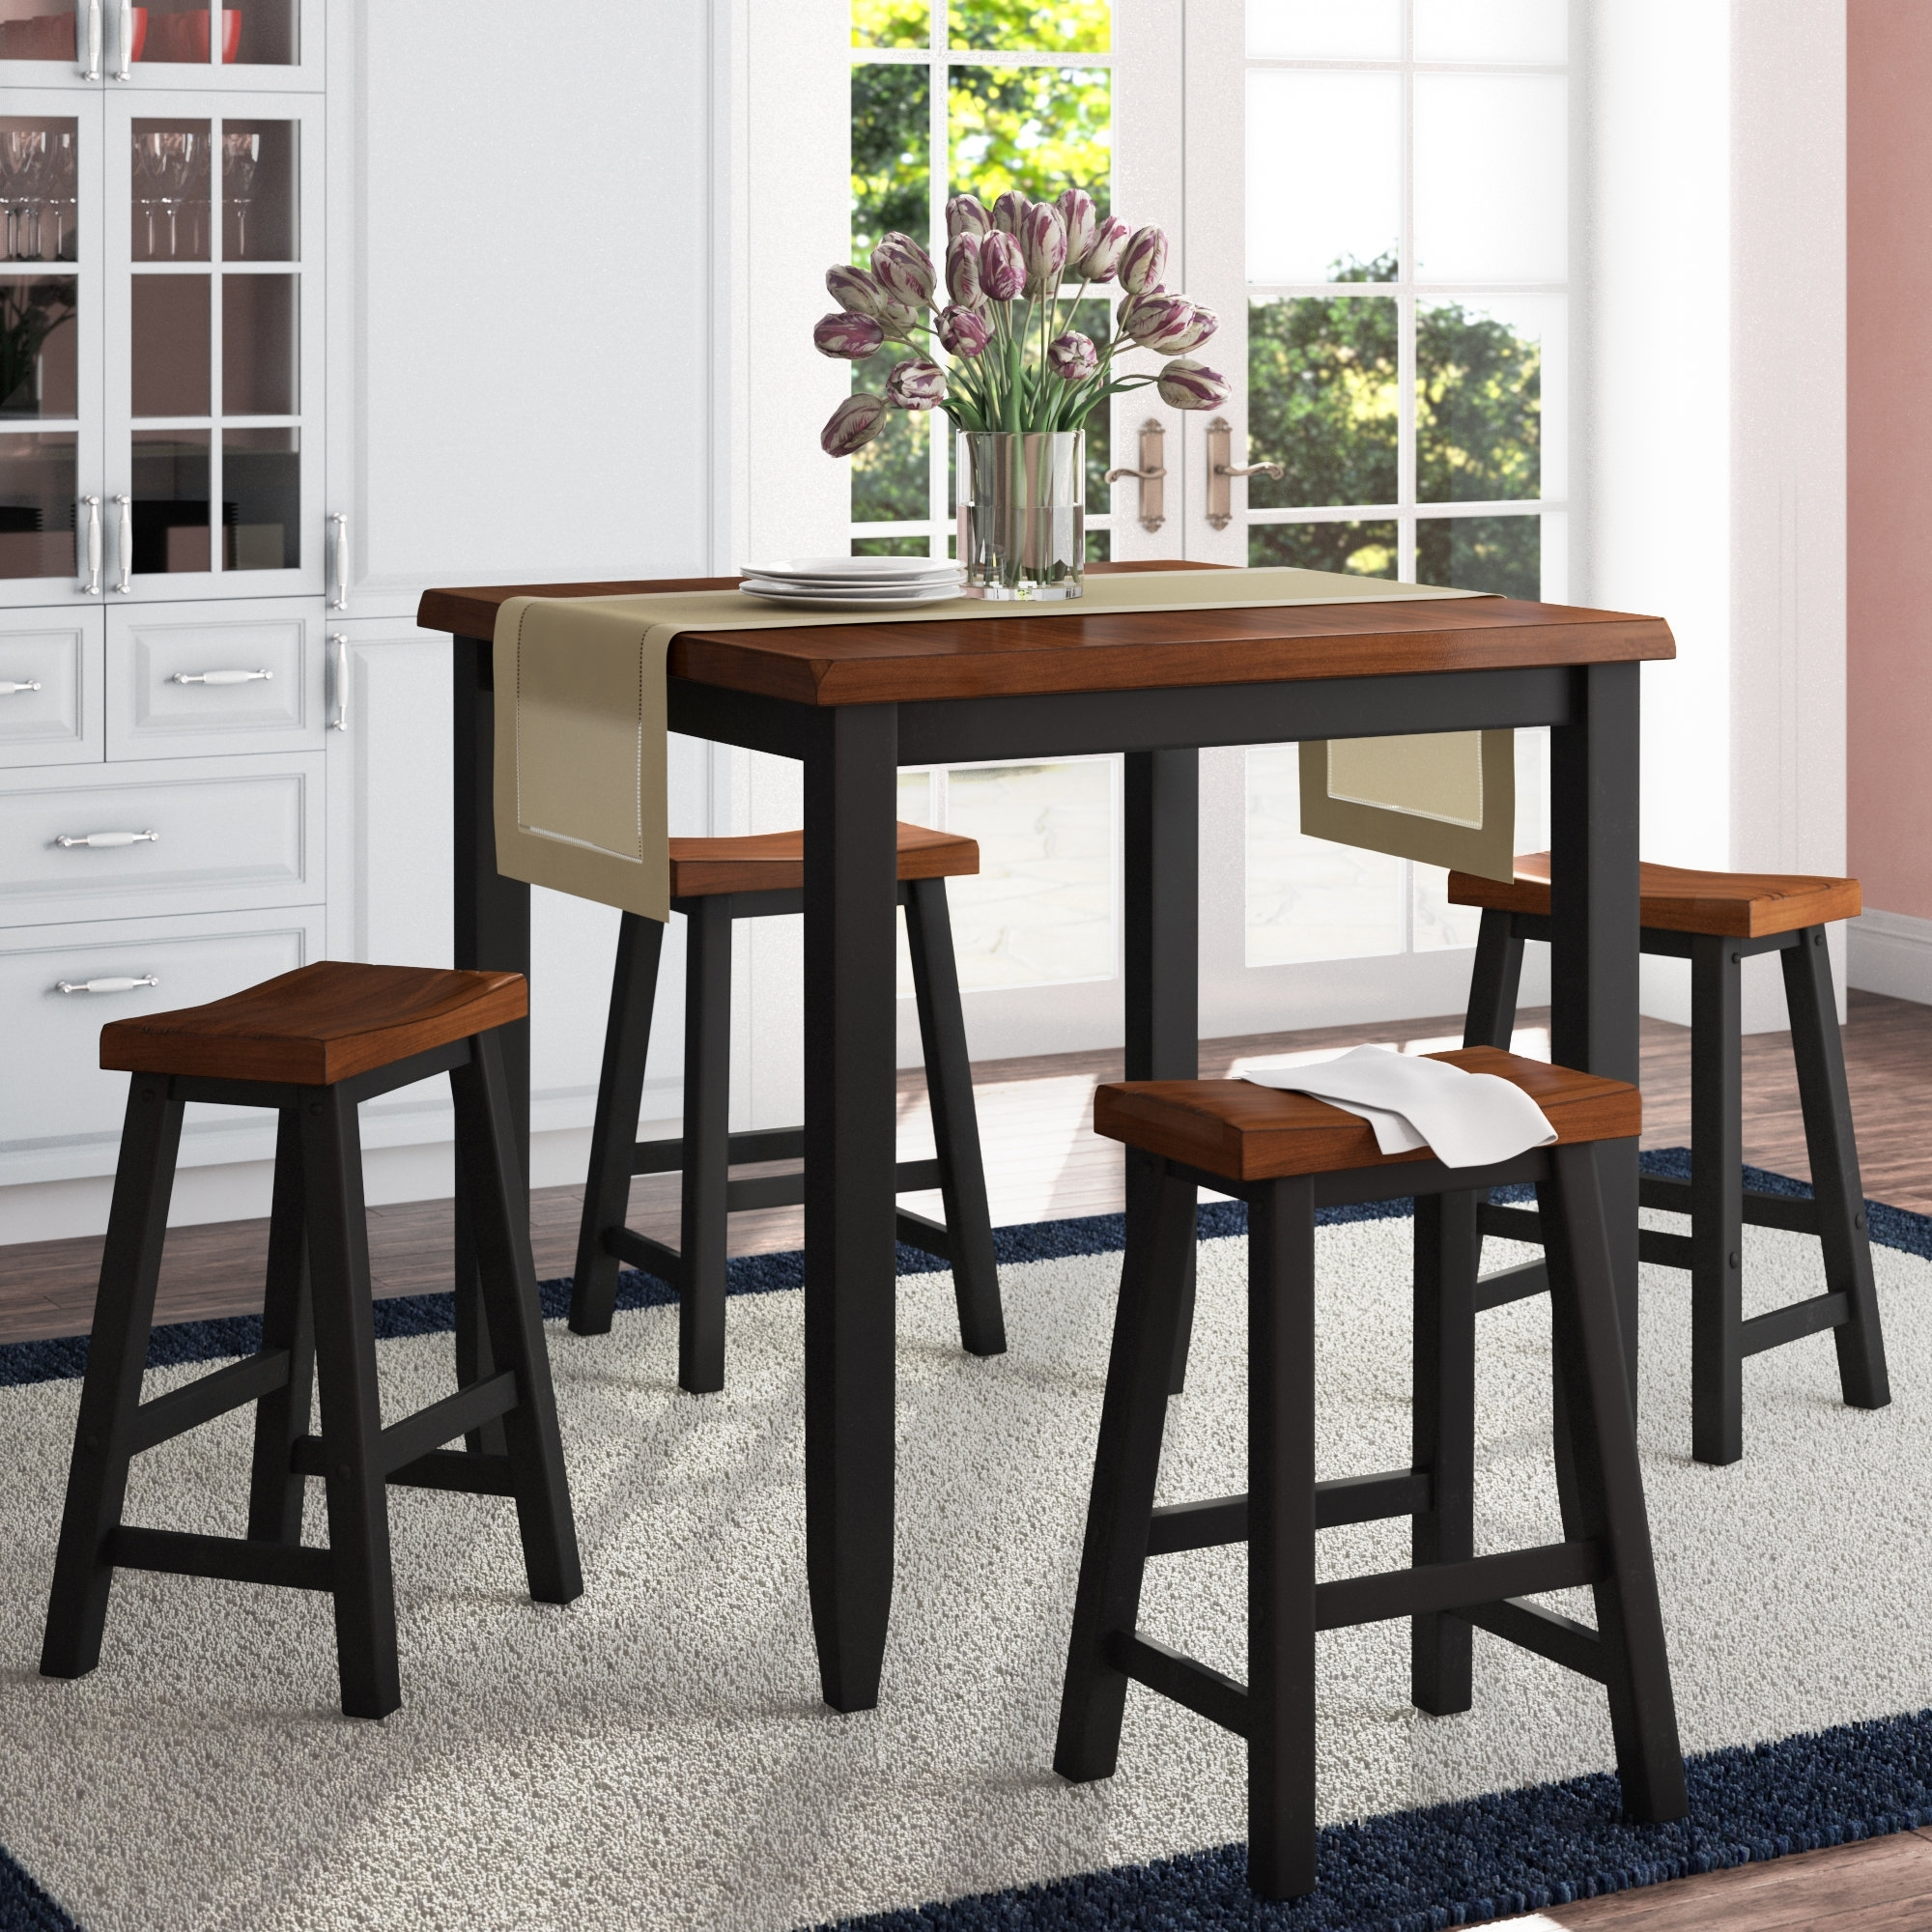 Darby Home Co Simmons Casegoods Ruggerio 5 Piece Counter Height Pub With Regard To 2018 Jaxon 5 Piece Round Dining Sets With Upholstered Chairs (View 8 of 20)